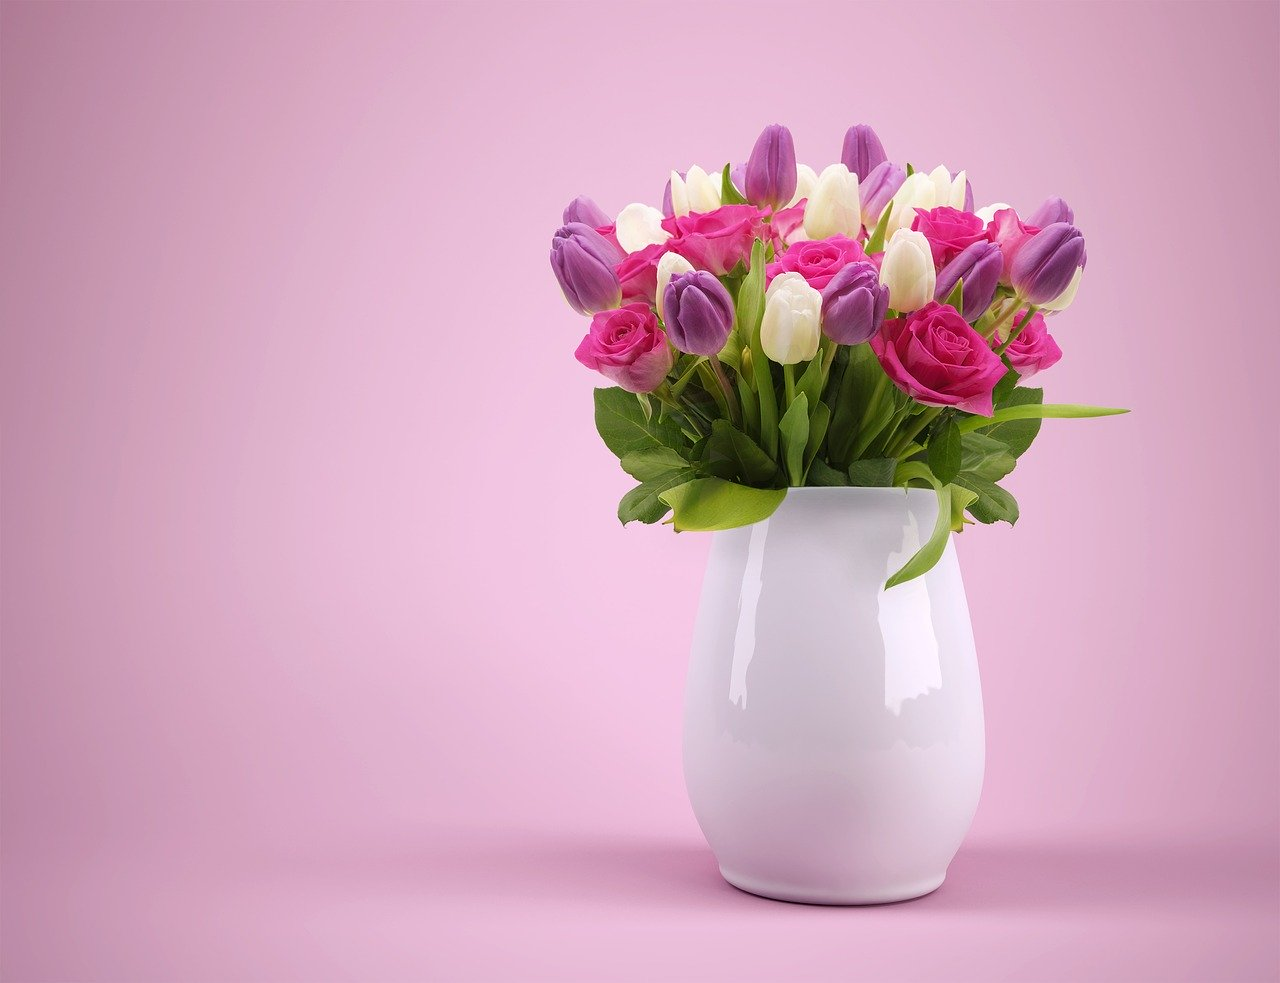 bouquet, vase, flowers